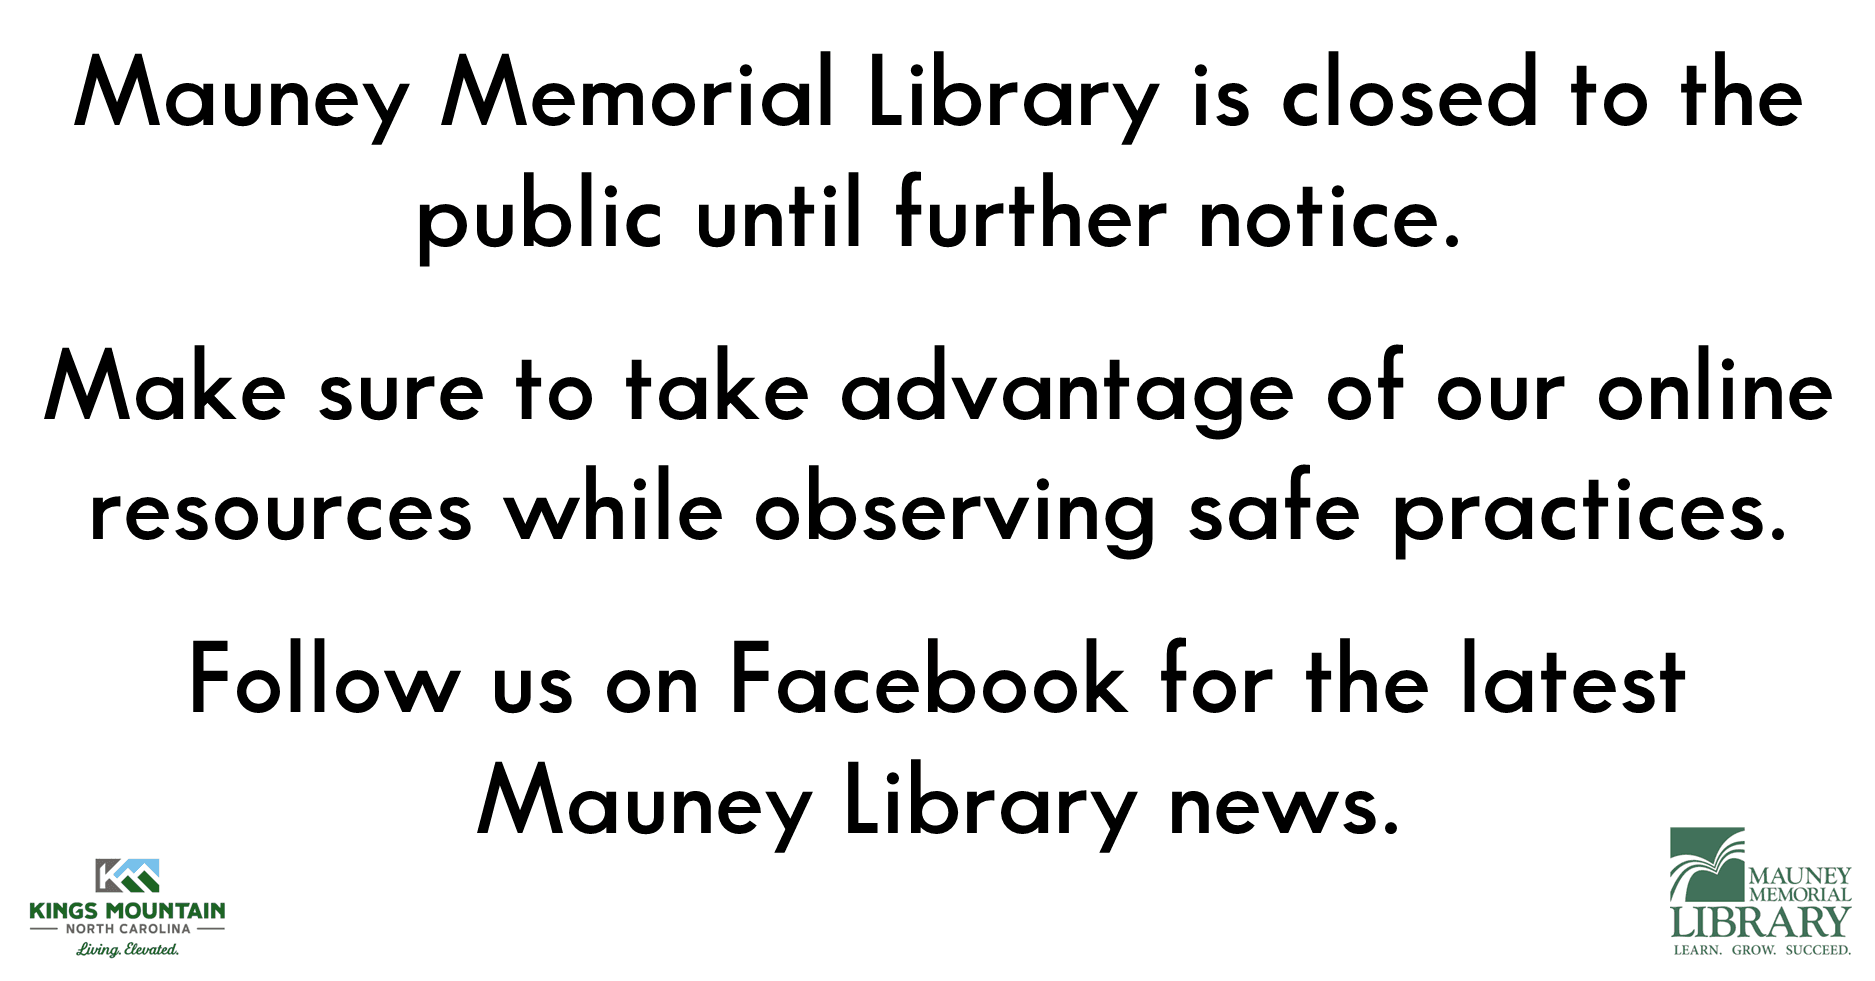 The Mauney Memorial Library will be closed to the public until further notice.